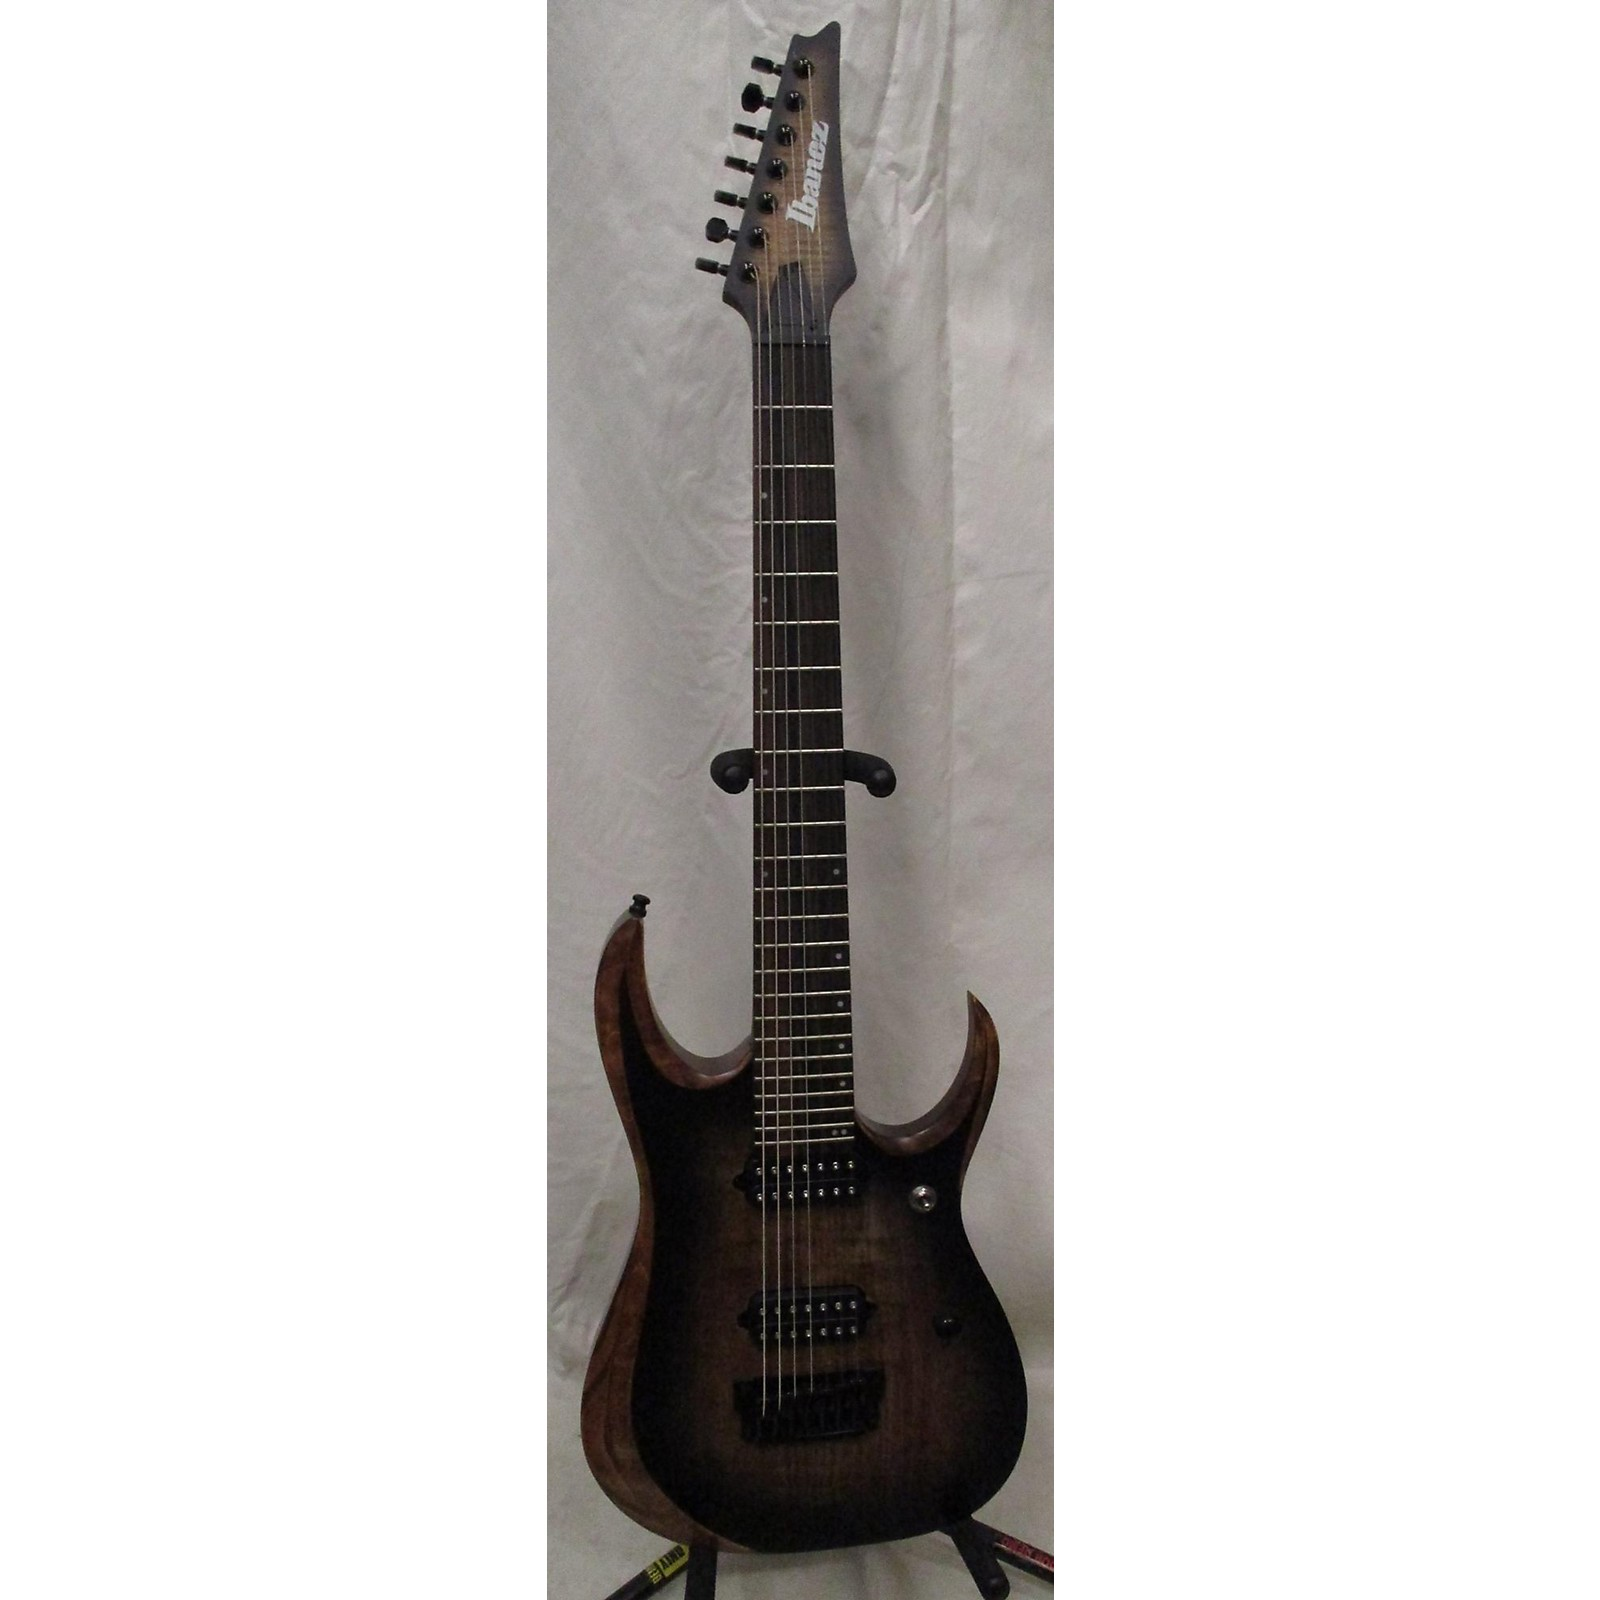 Ibanez RGD71AL Solid Body Electric Guitar